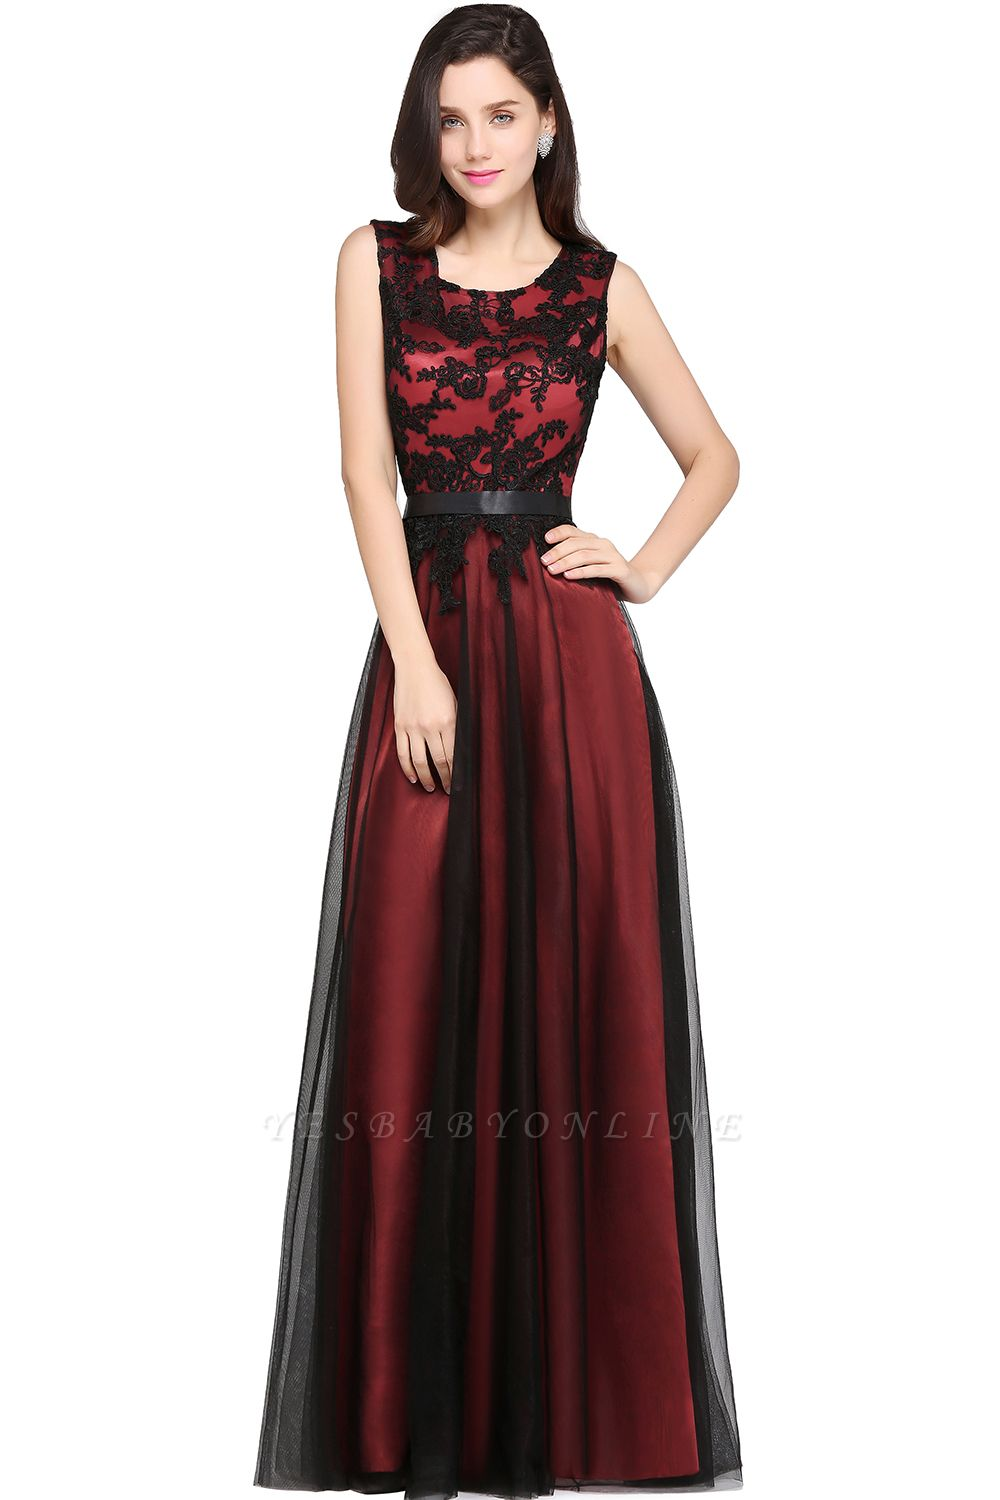 Cheap Pretty Sleeveless Black Lace Tulle Floor Length Formal Evening Dress with Sash in Stock